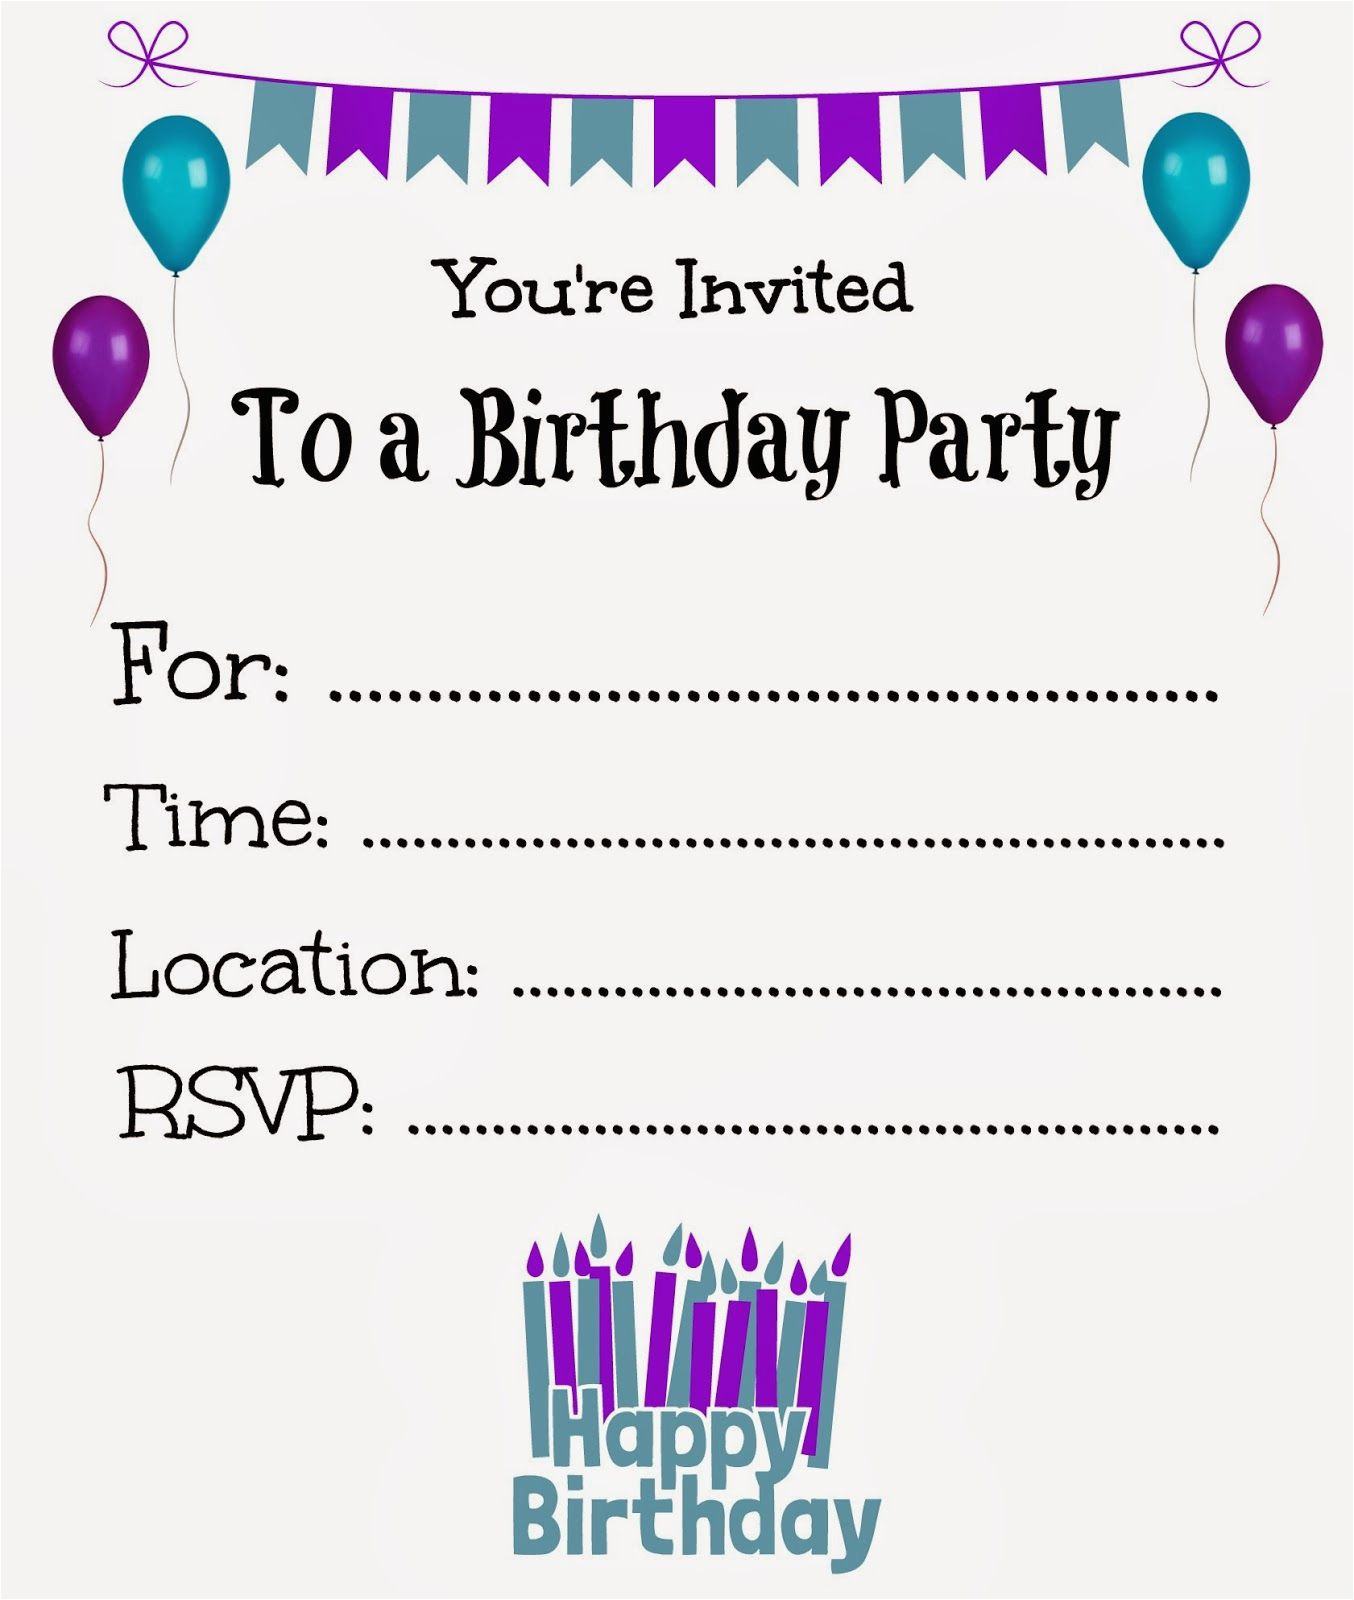 Printable Children S Birthday Party Invitations | Birthdaybuzz - Free Printable Birthday Party Invitations With Photo